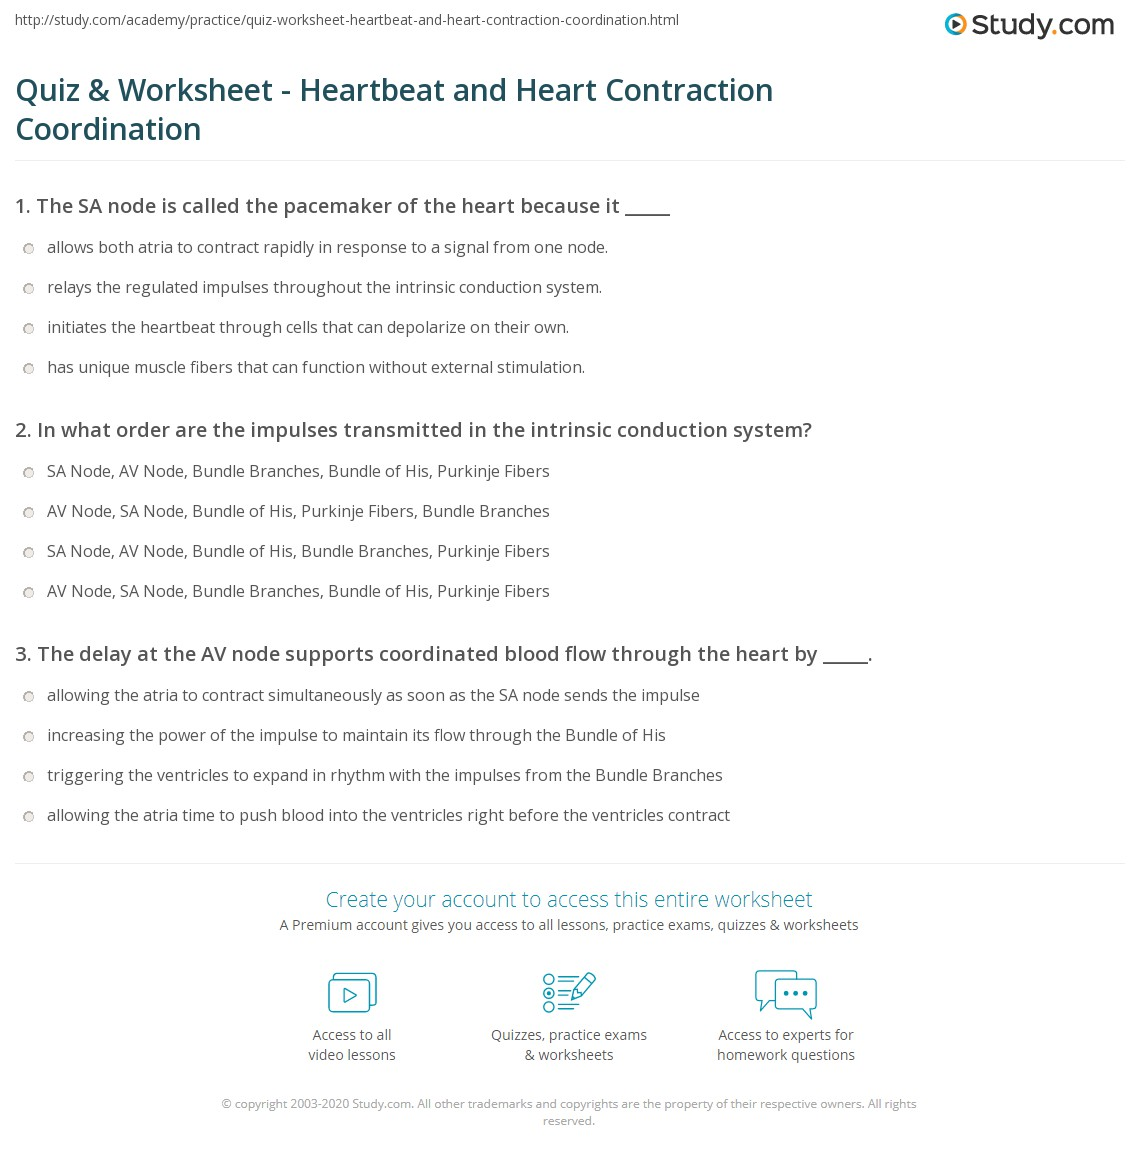 Quiz Worksheet Heartbeat And Heart Contraction